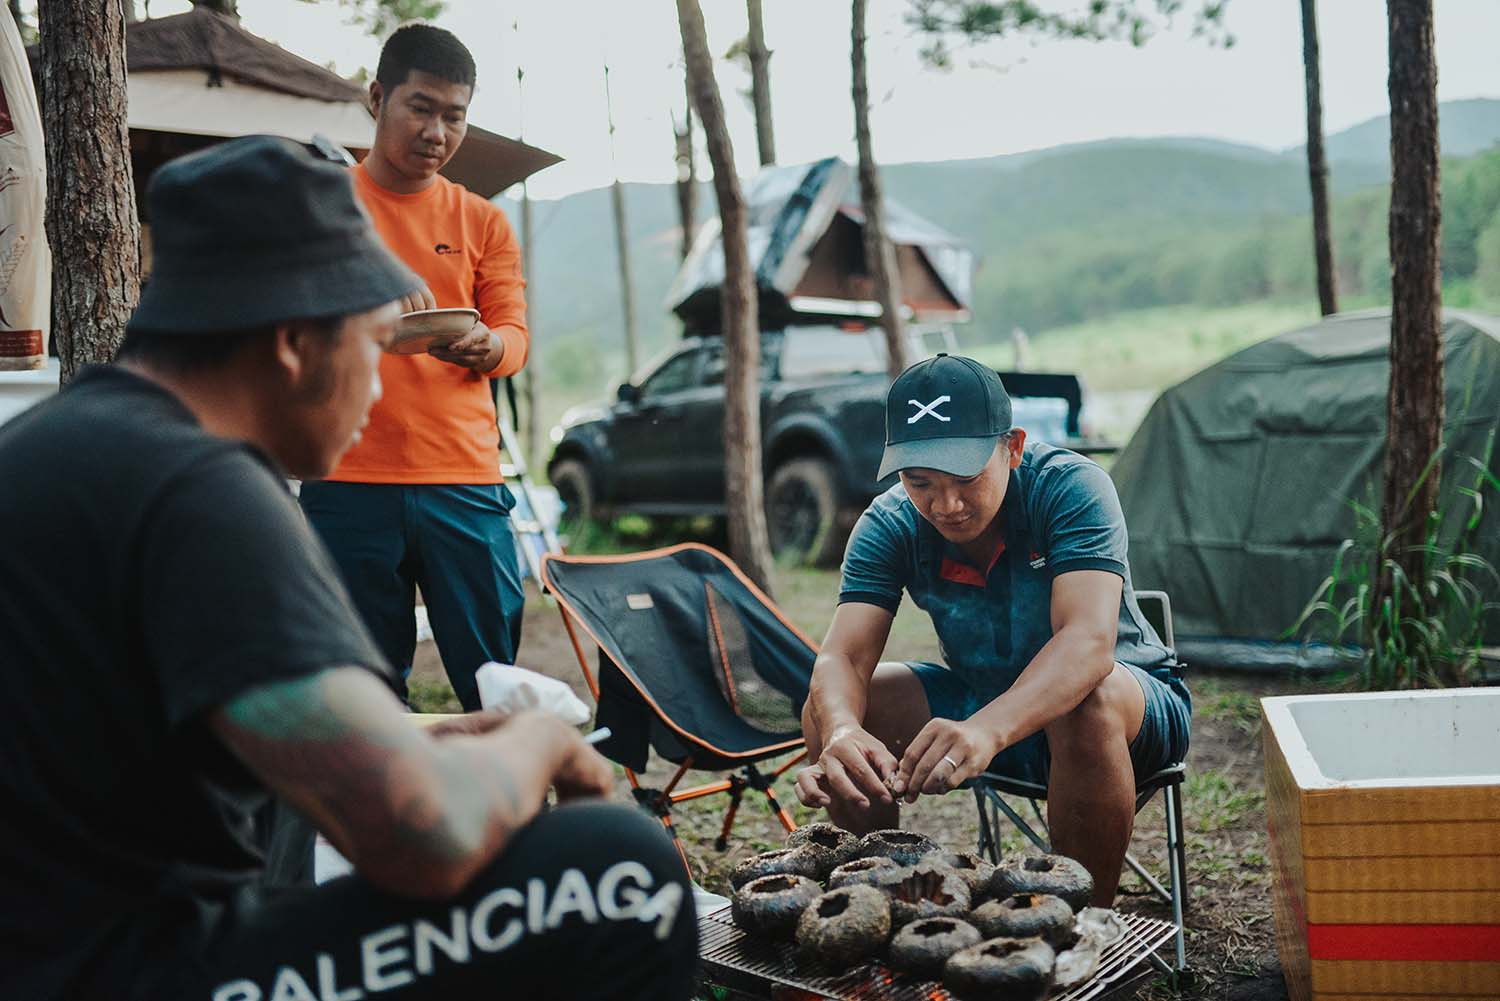 Camping Clothing: How To Dress Properly For Your Next Camping Trip